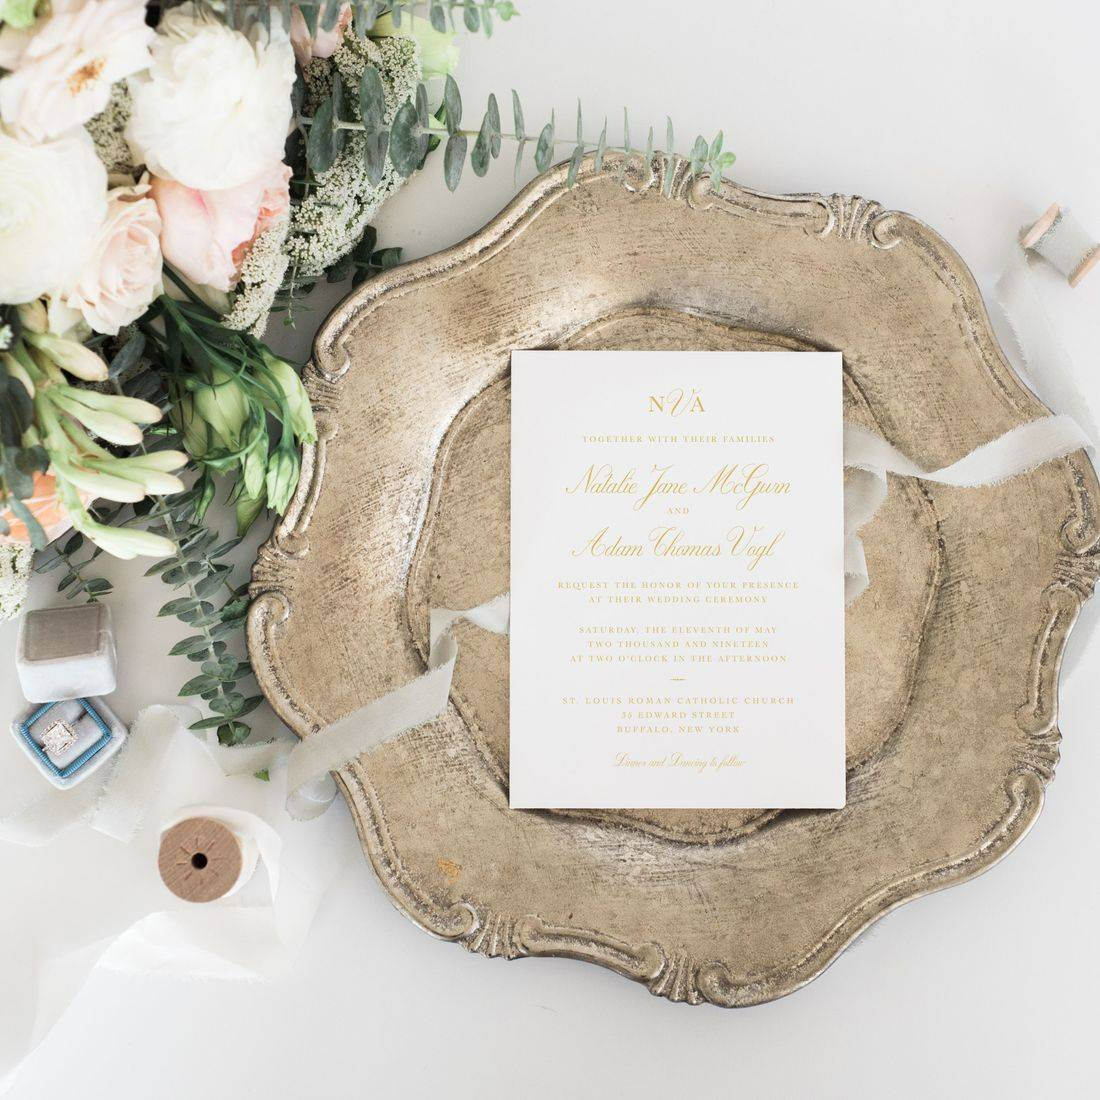 Elegant classic modern gold and white wedding invitations with formal fonts